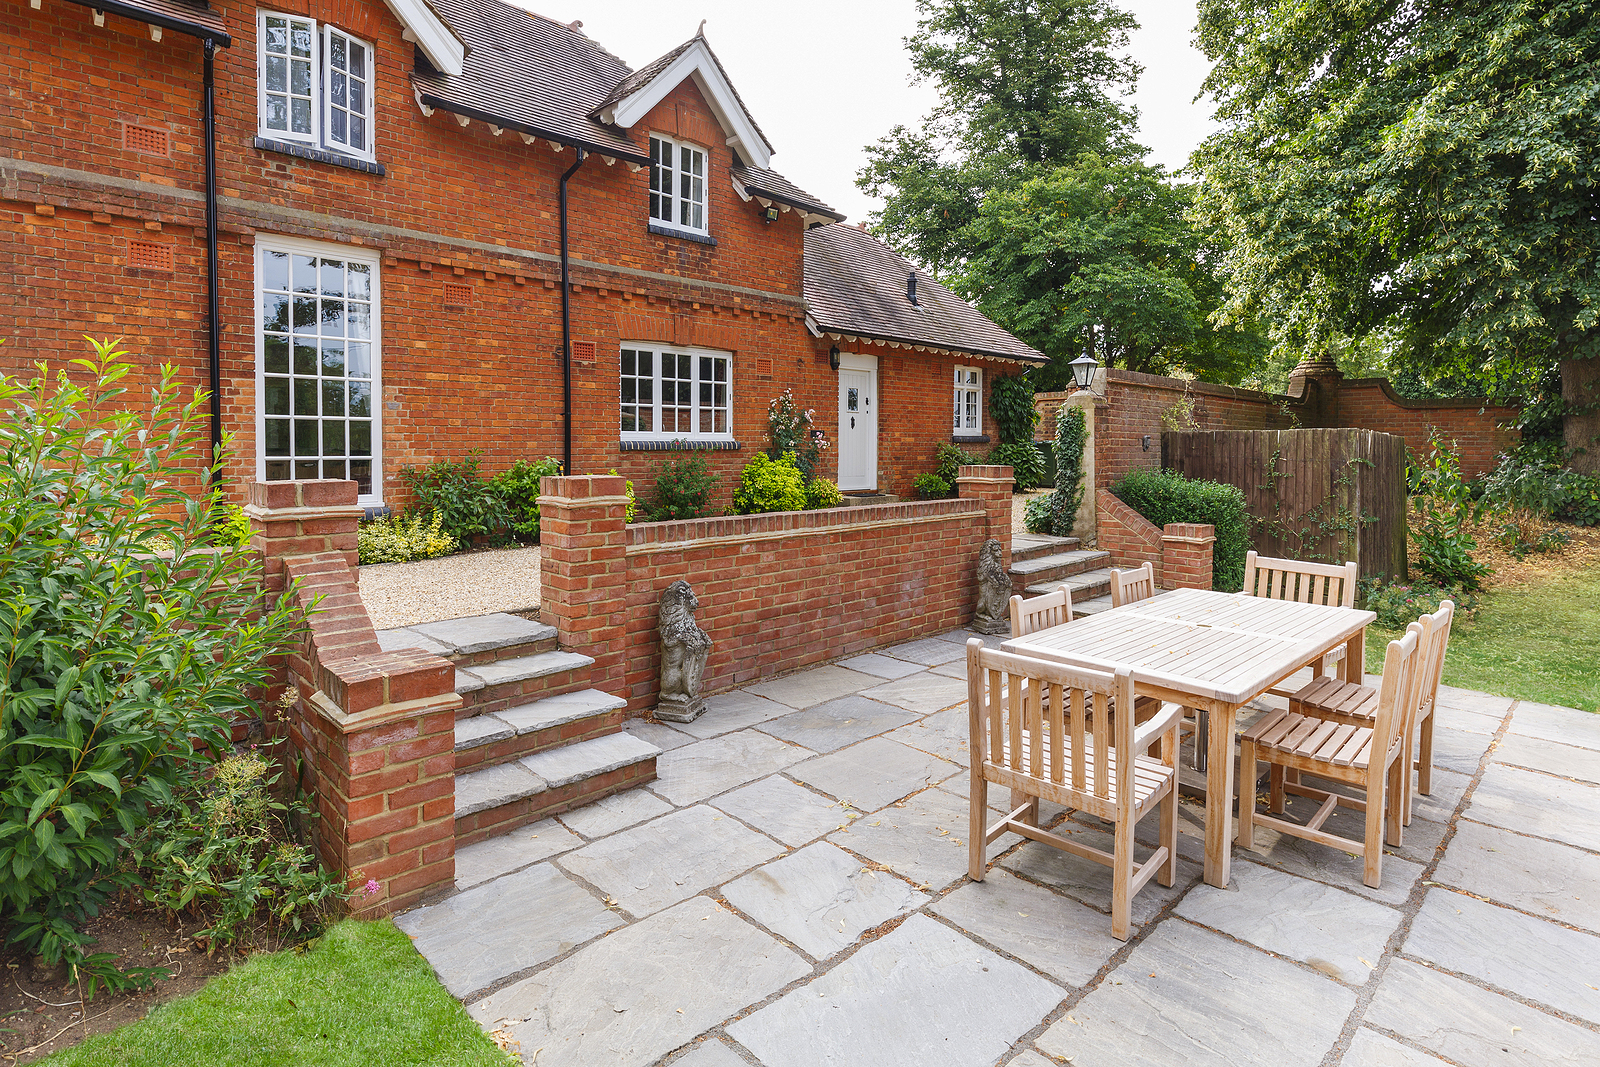 Large historic Victorian house featuring a garden and patio with reclaimed teak furniture.